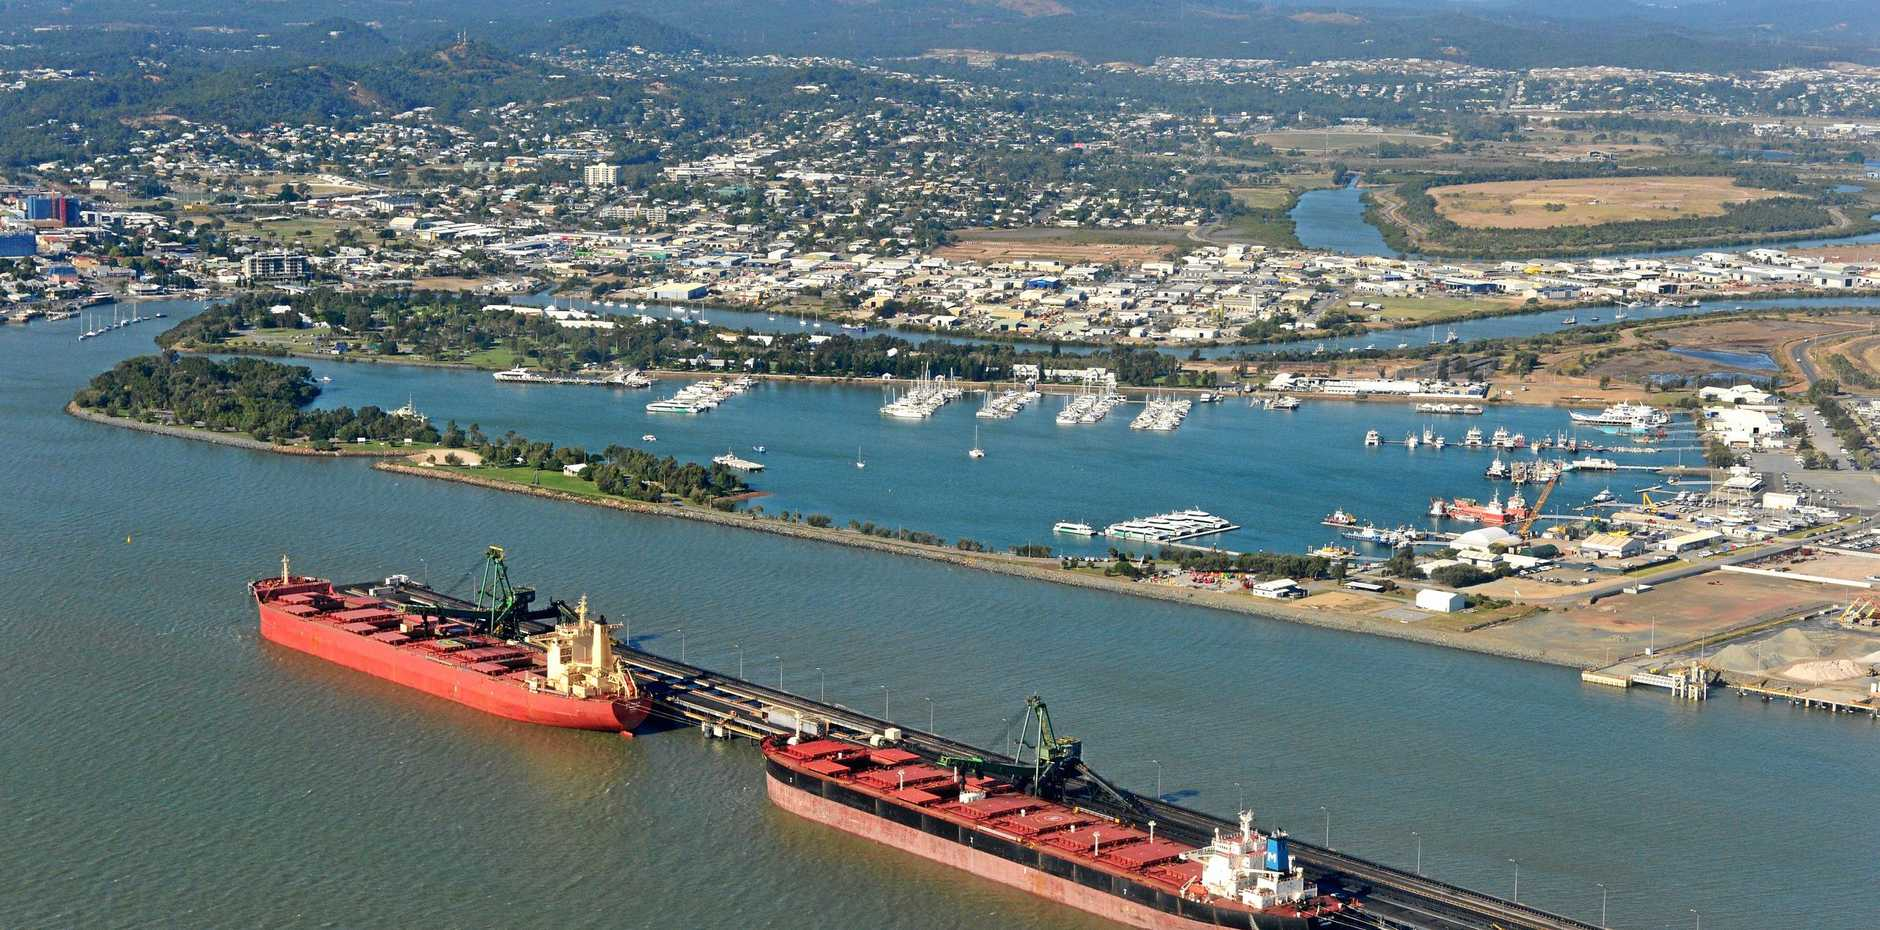 DETAINED: A Chinese-owned bulk carrier (not pictured) chartered to carry coal to Korea has been detained at the Port of Gladstone by the Australian Maritime Safety Authority after crew members reported they were owed $64,000 in unpaid wages. Brenda Strong GLA110713PLAN